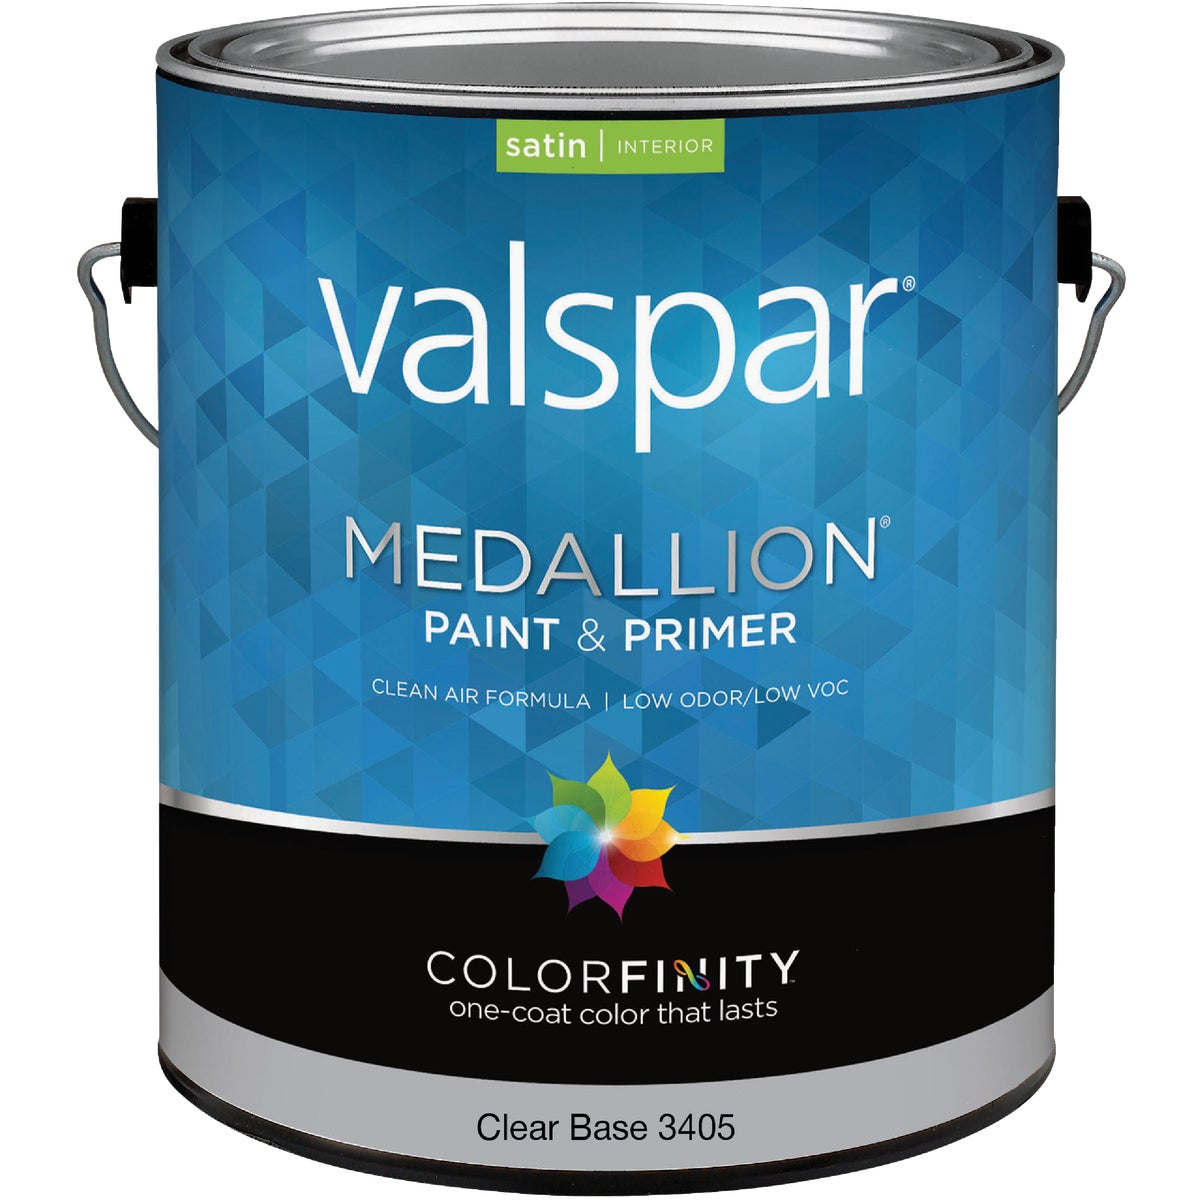 INT SAT CLEAR BS PAINT - 027.0003405.007 by Valspar Corp